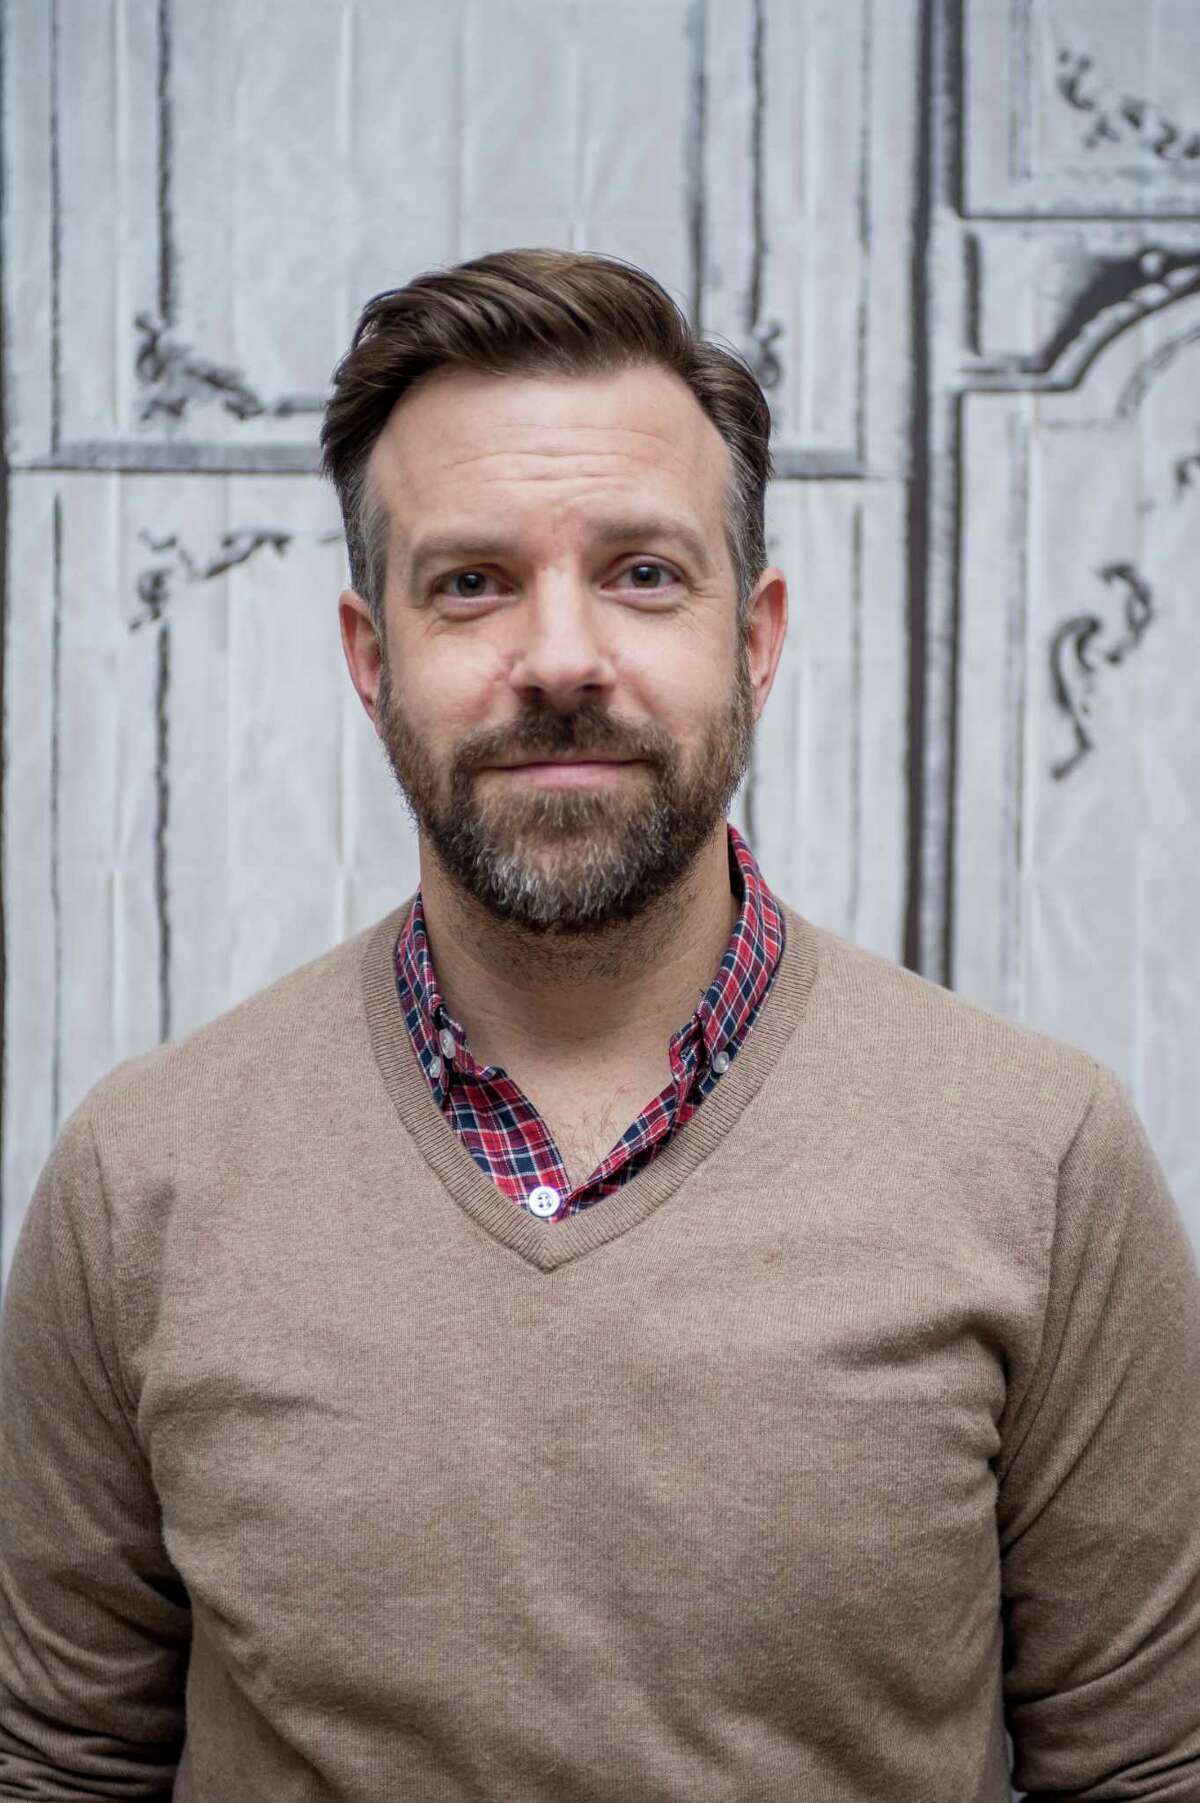 NEW YORK, NY - FEBRUARY 16: Actor Jason Sudeikis discusses his film